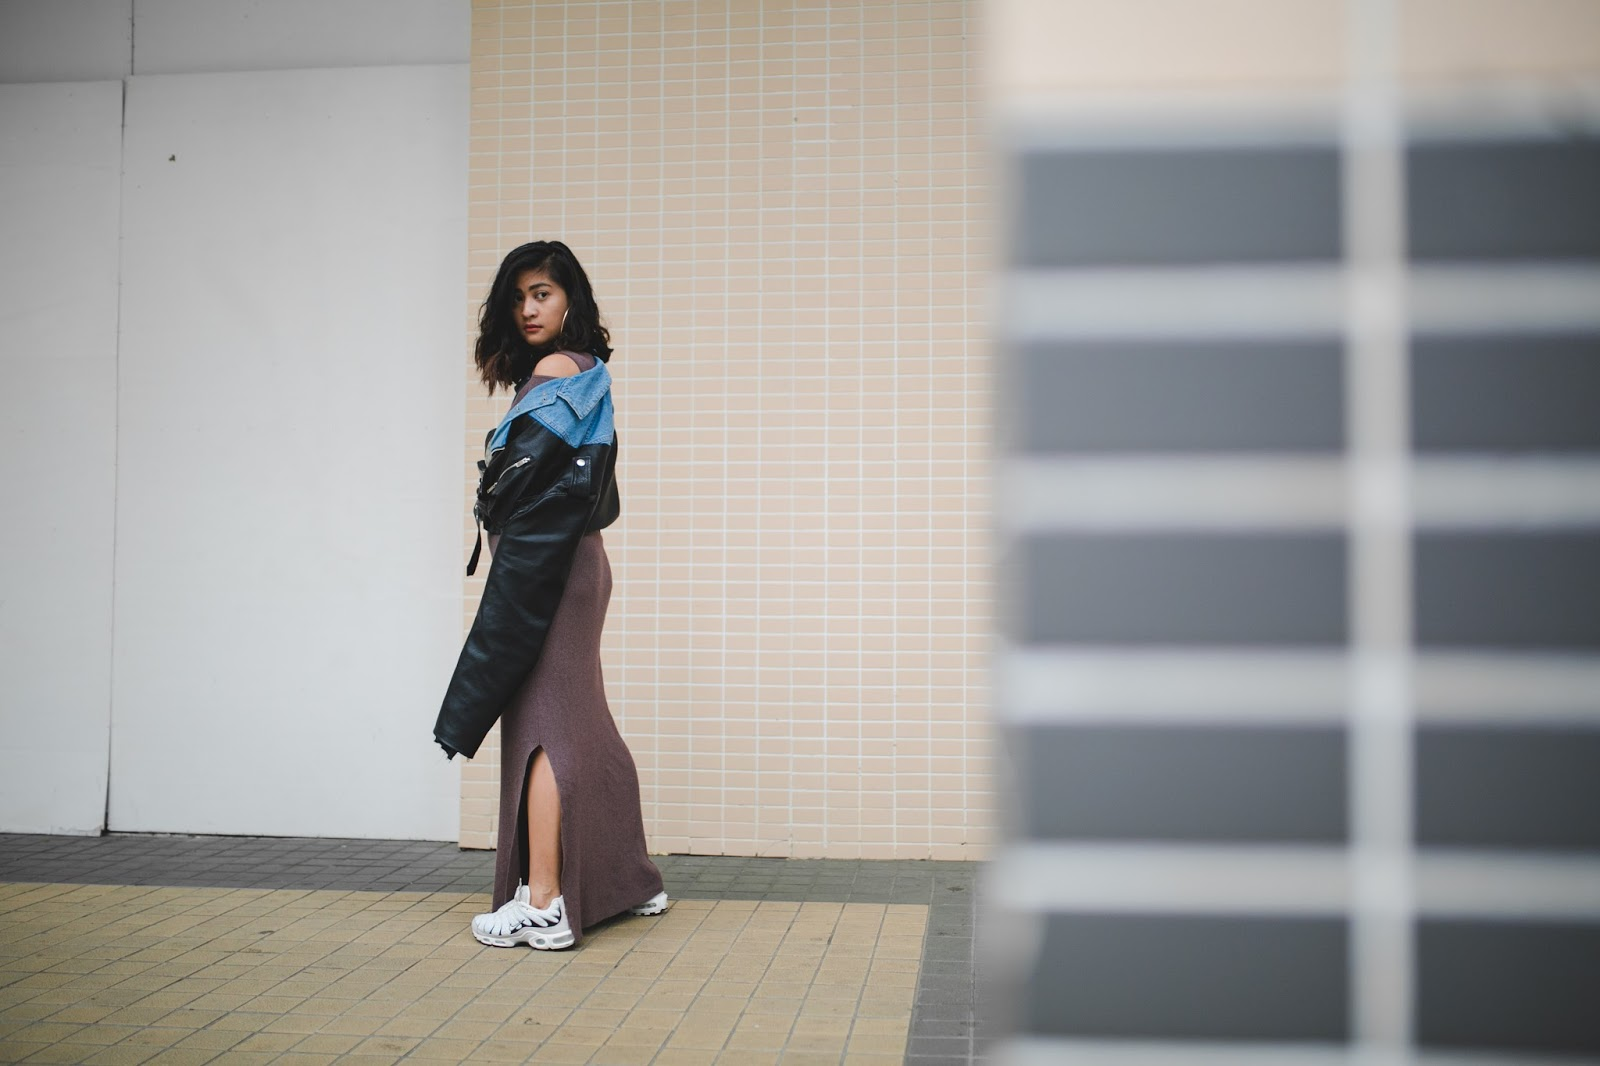 Macau Fashion blogger outfit wearing Nikelab